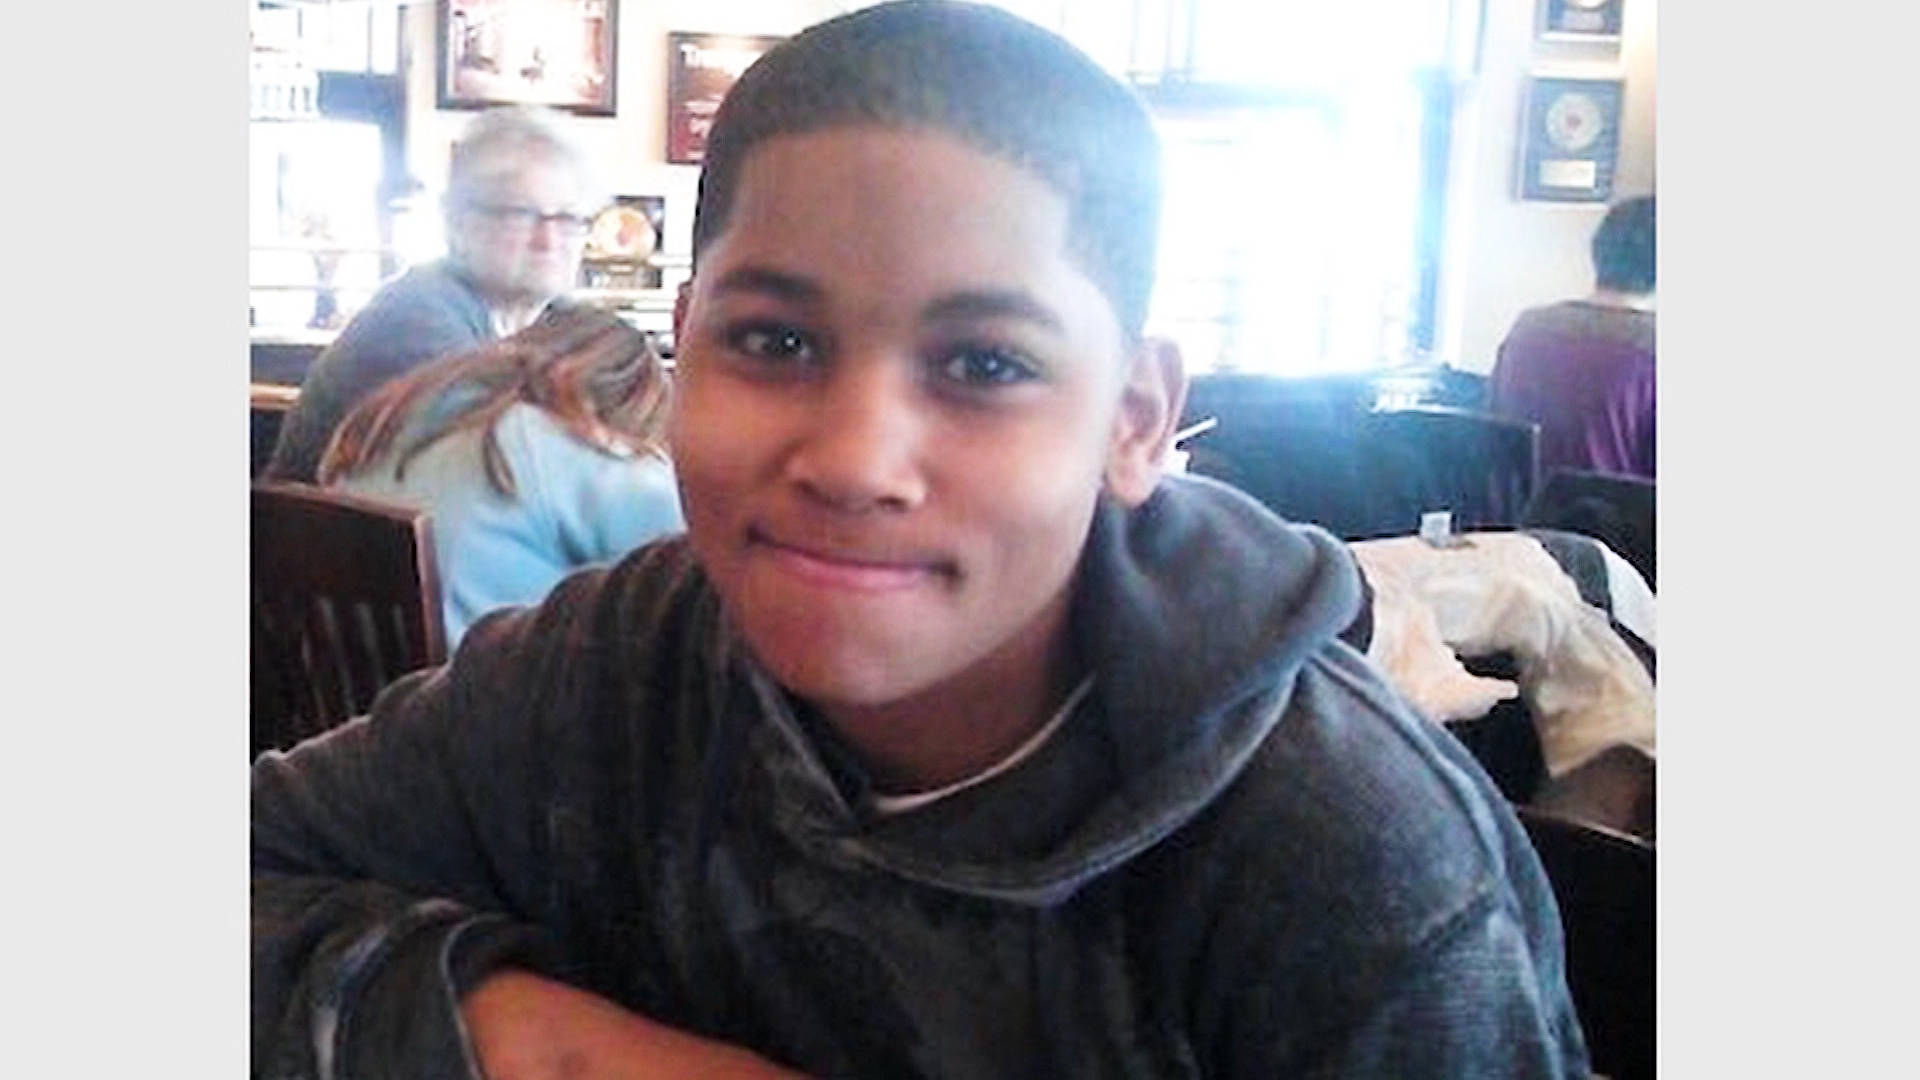 Justice Department Quietly Ended Probe into Police Killing of 12-Year-Old Tamir Rice